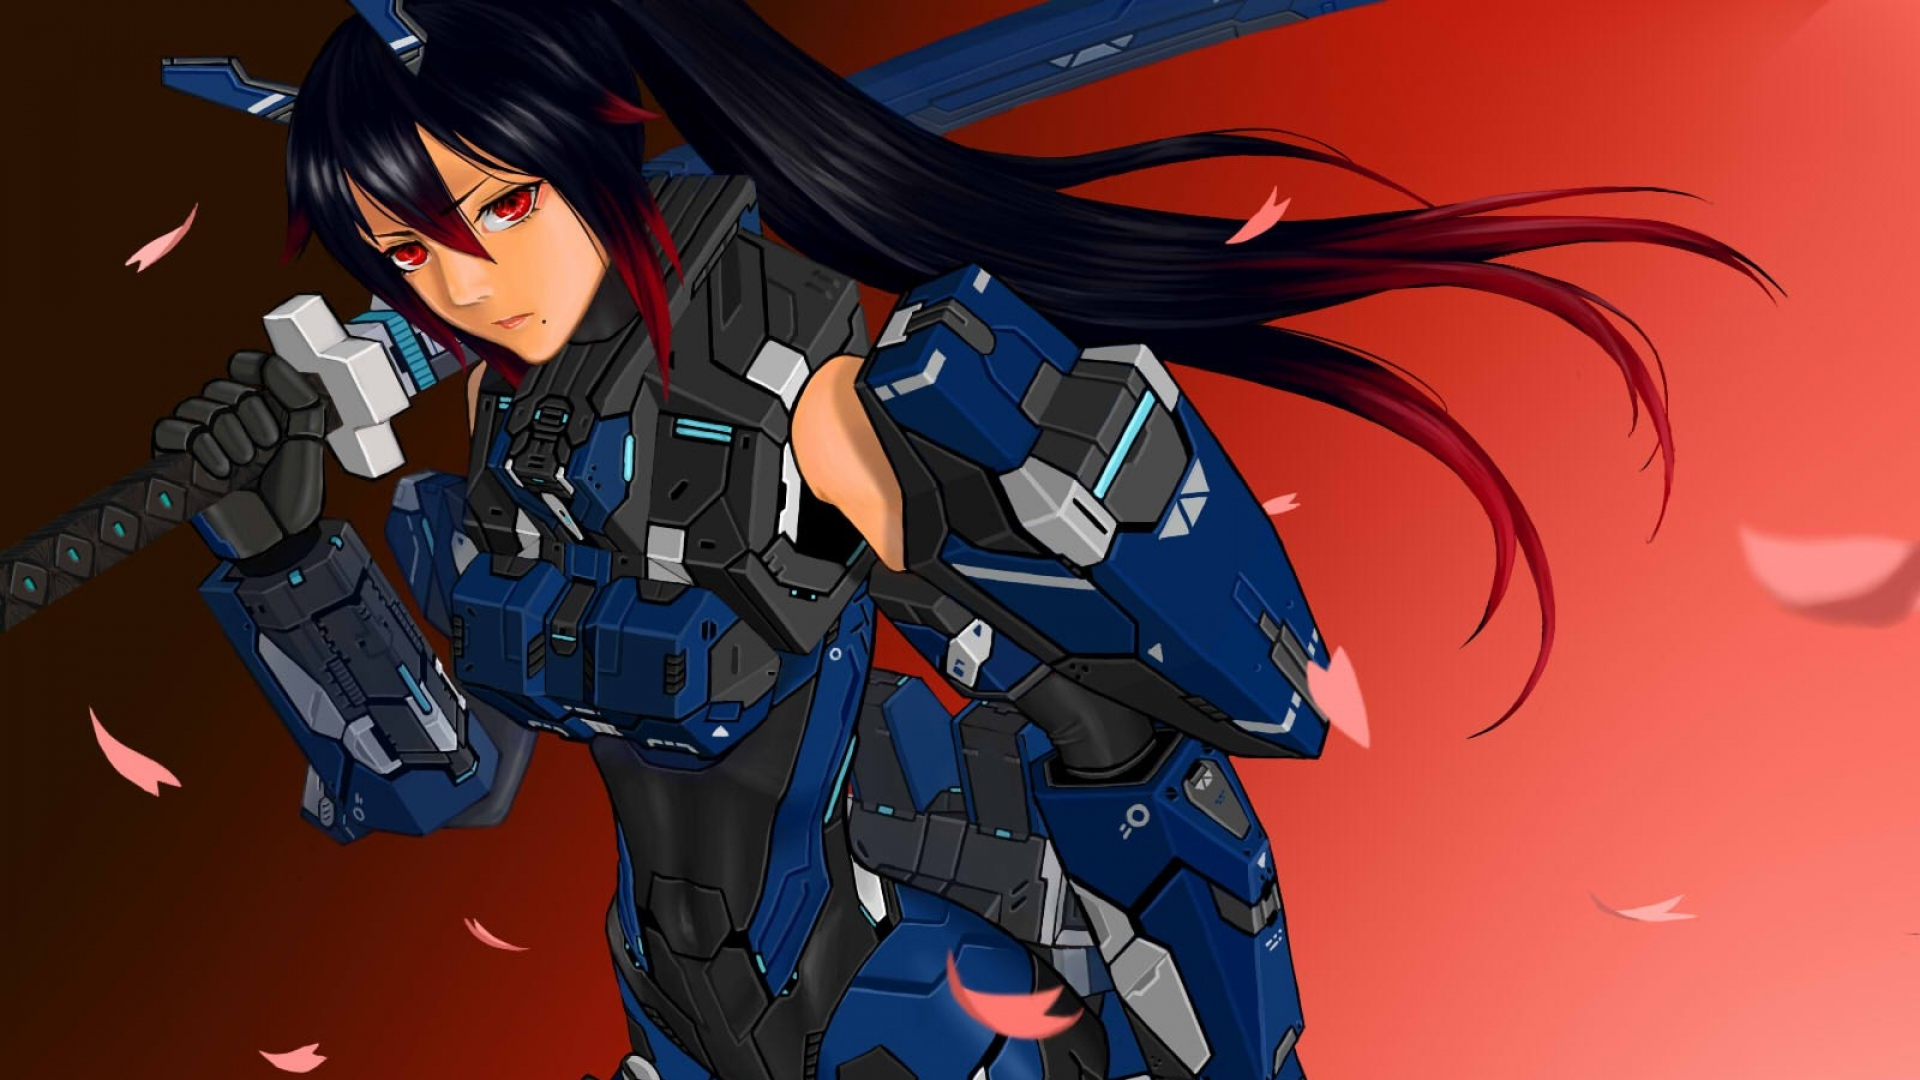 download wallpaper 1920x1080 girl, brunette, robot, iron, hand